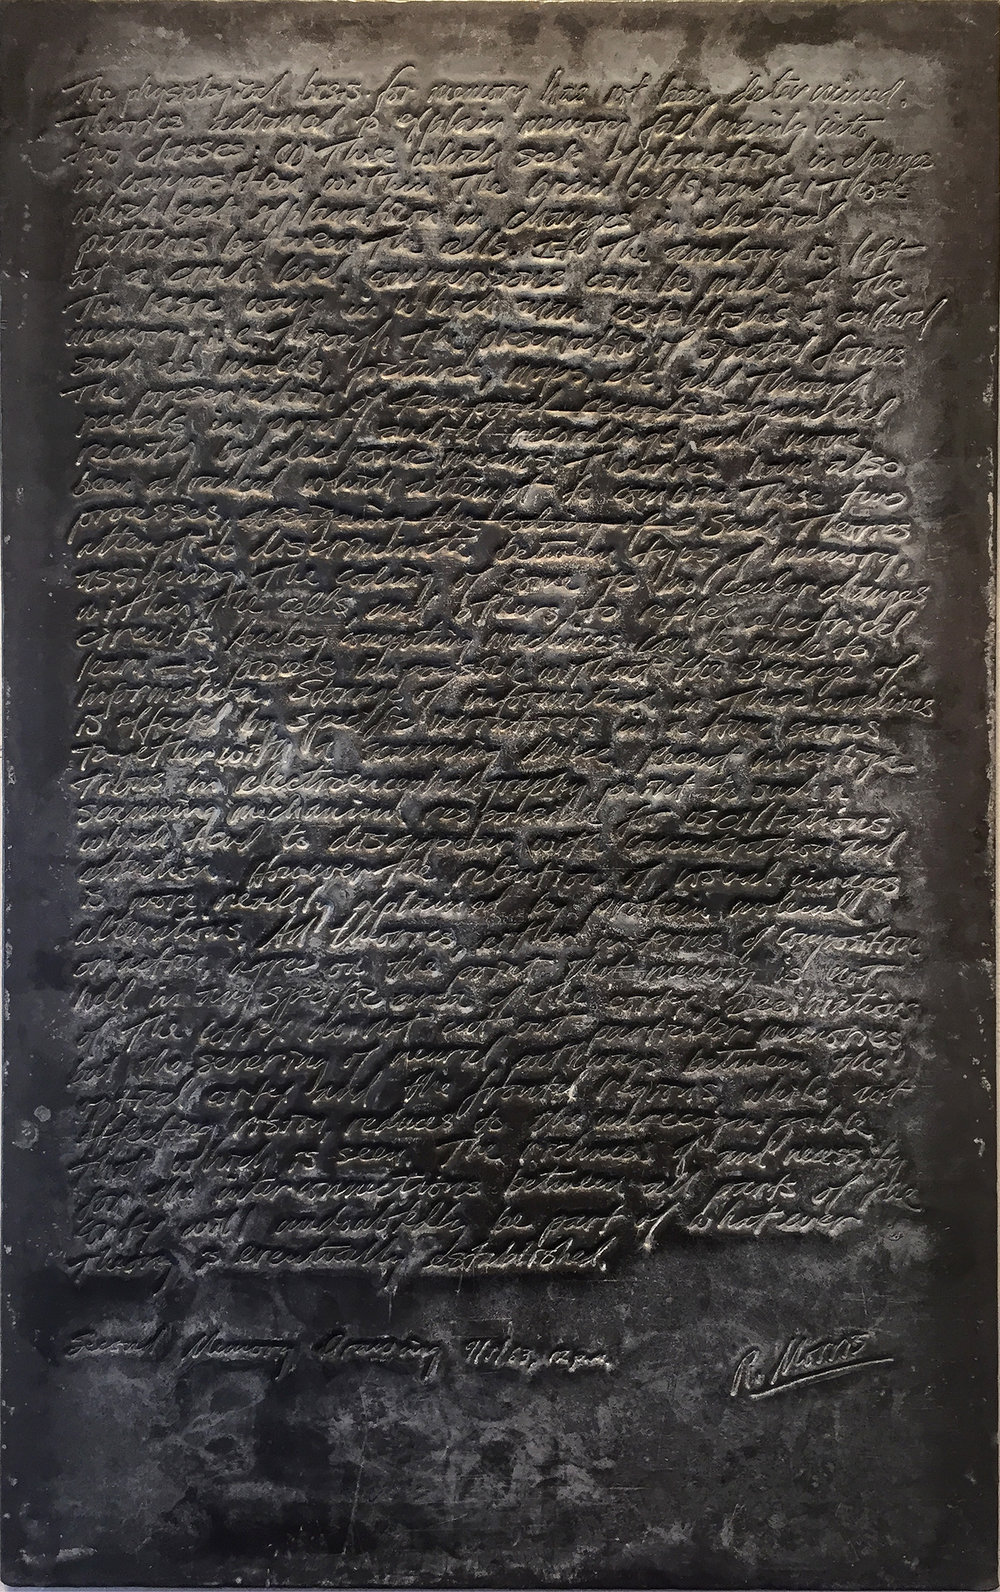 Second memory Drawing, 1963, 21 x 13 inches, Embossed lead relief panel